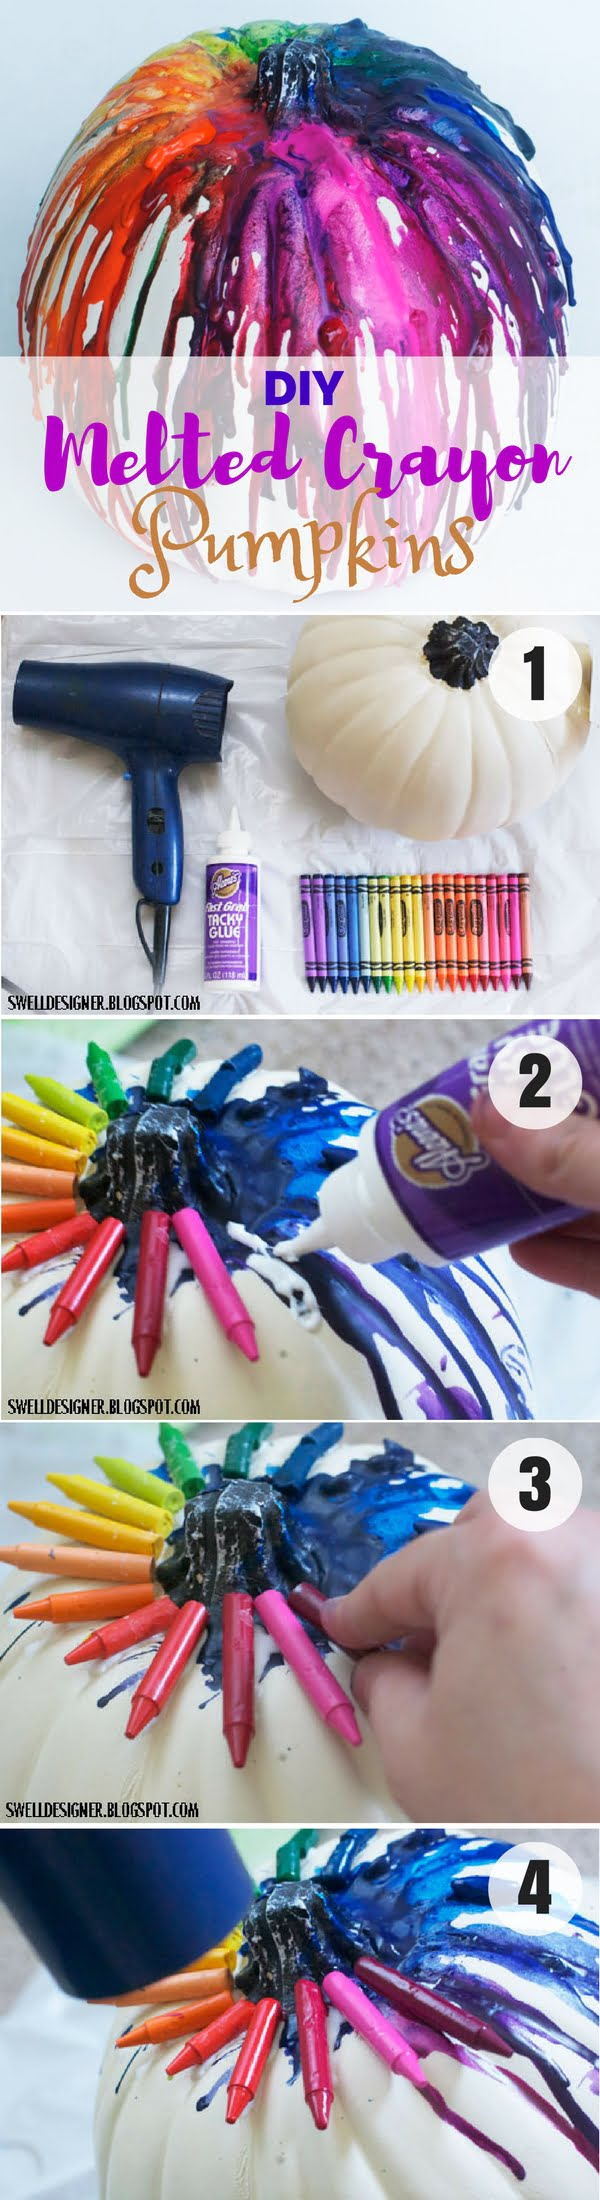 Easy to make stunning DIY Melted Crayon Pumpkins